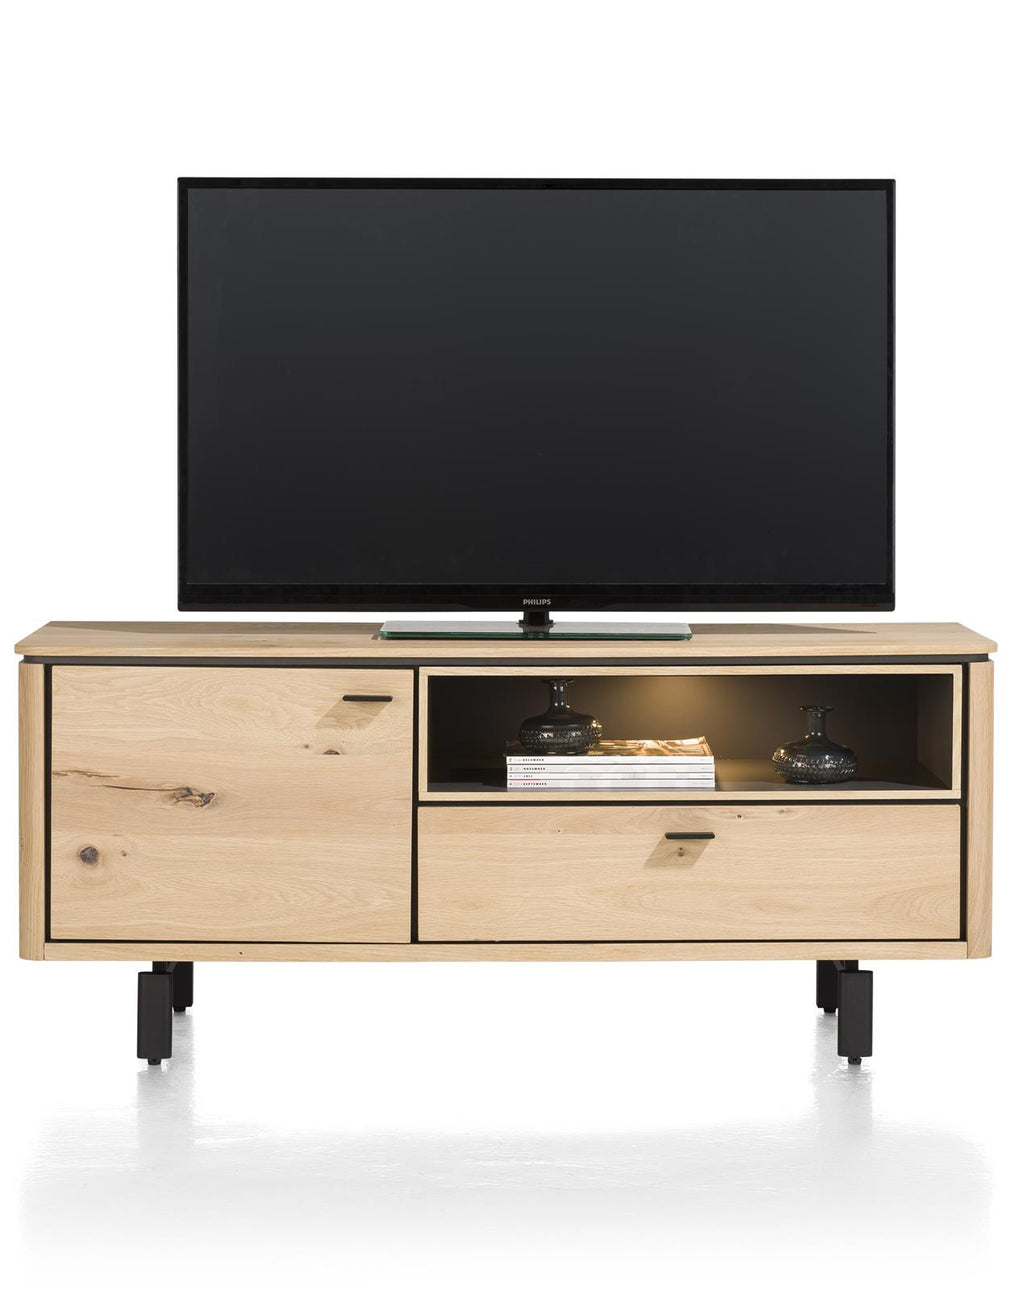 Livada Moreni Bespoke TV Lowboards in Four Colours